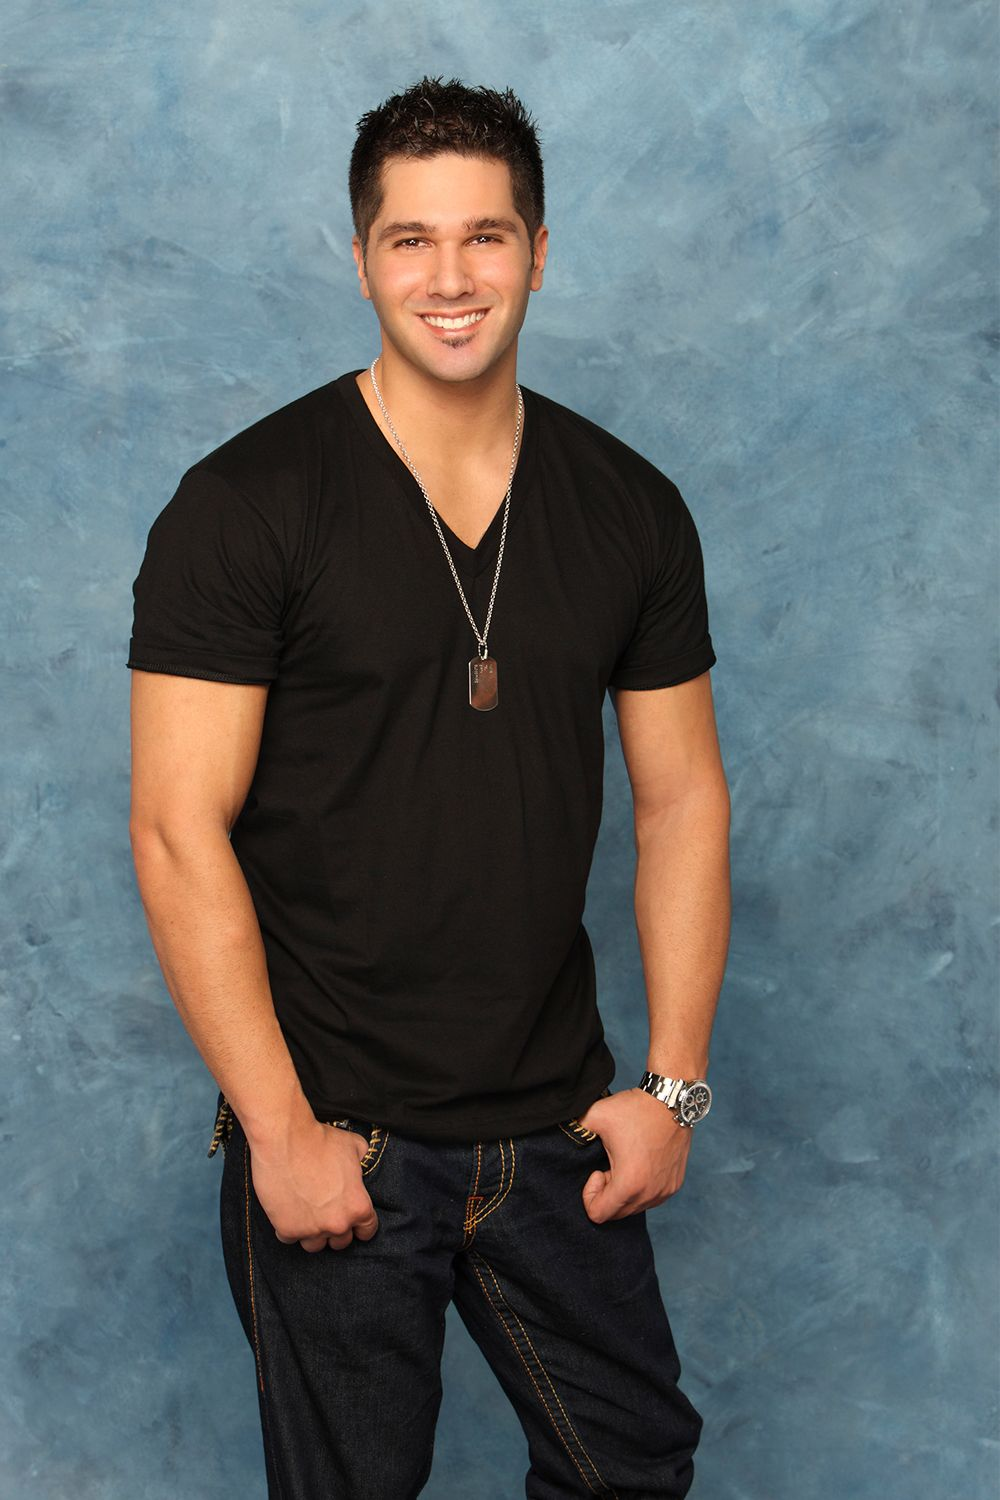 "Justin Rego ('The Bachelorette' Season 6) Justin ""R Rated"" Rego was the bonafide villain of The Bachelorette season 6. After promising bachelorette Ali Fedotowsky he was there for the right reasons, Ali discovered that Justin had a girlfriend at home in Canada and immediately sent him packing."